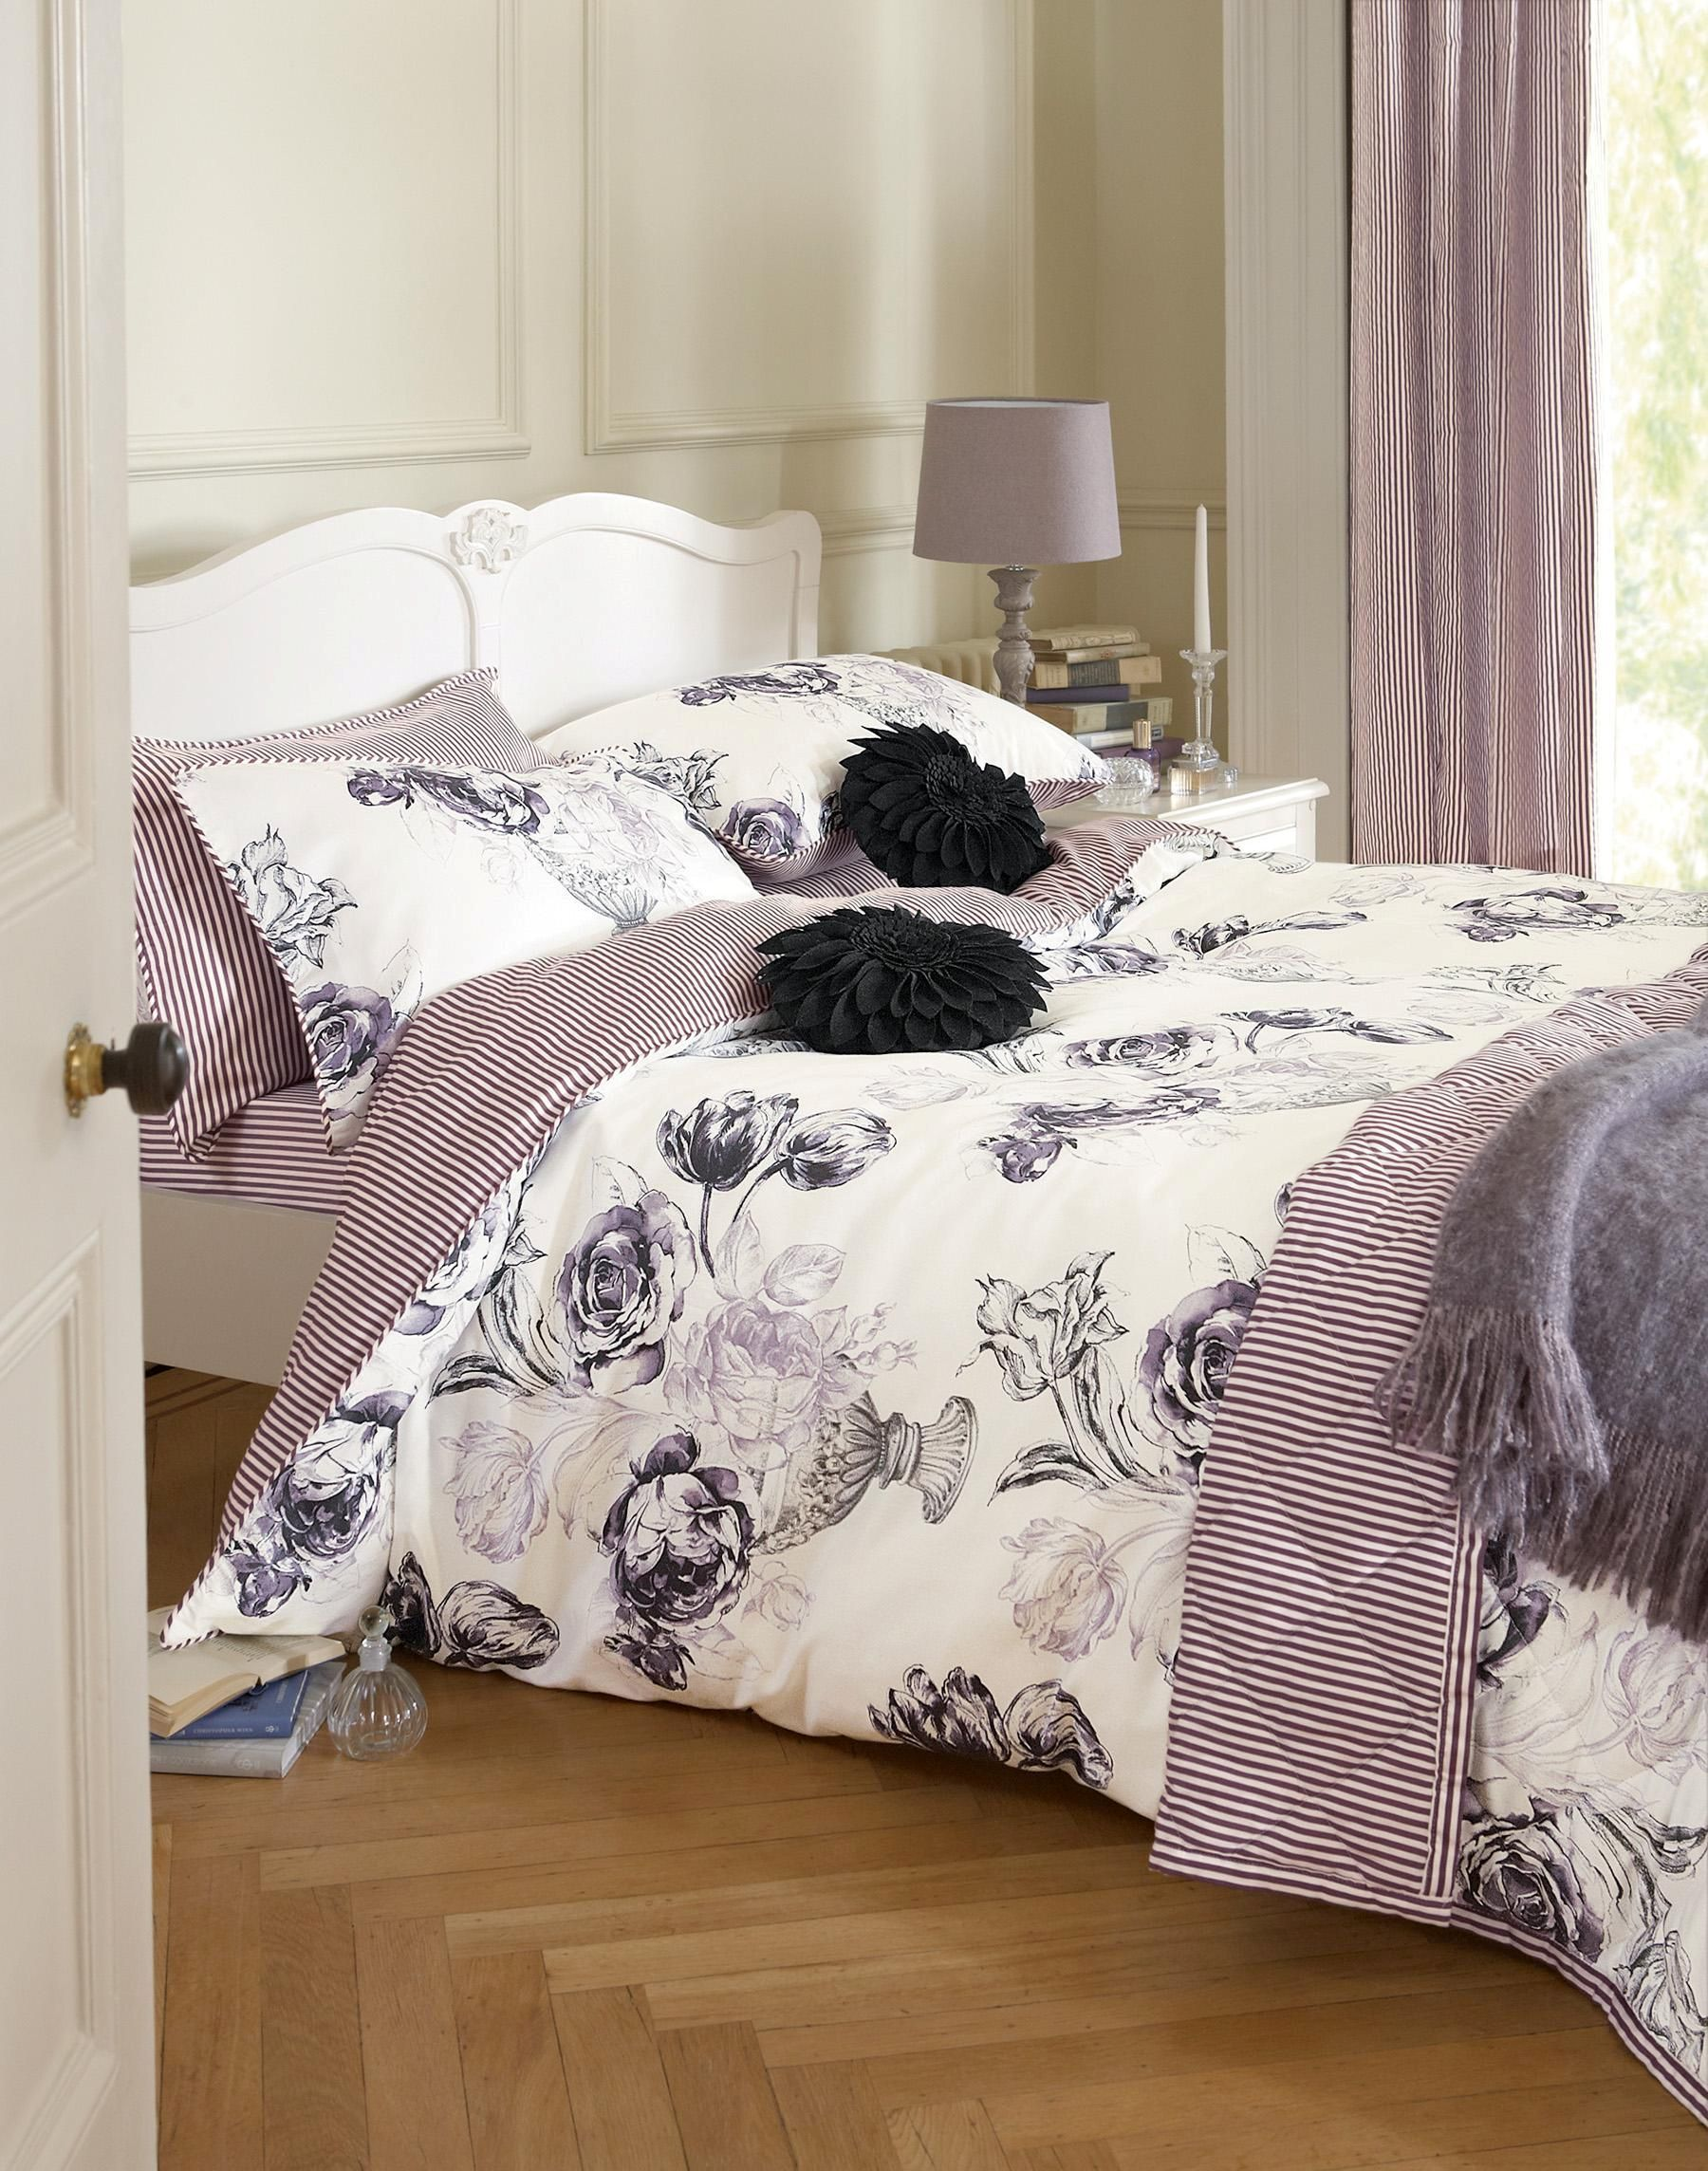 Buy Elegant Floral Print Bed Set from the Next UK online shop     Buy Elegant Floral Print Bed Set from the Next UK online shop